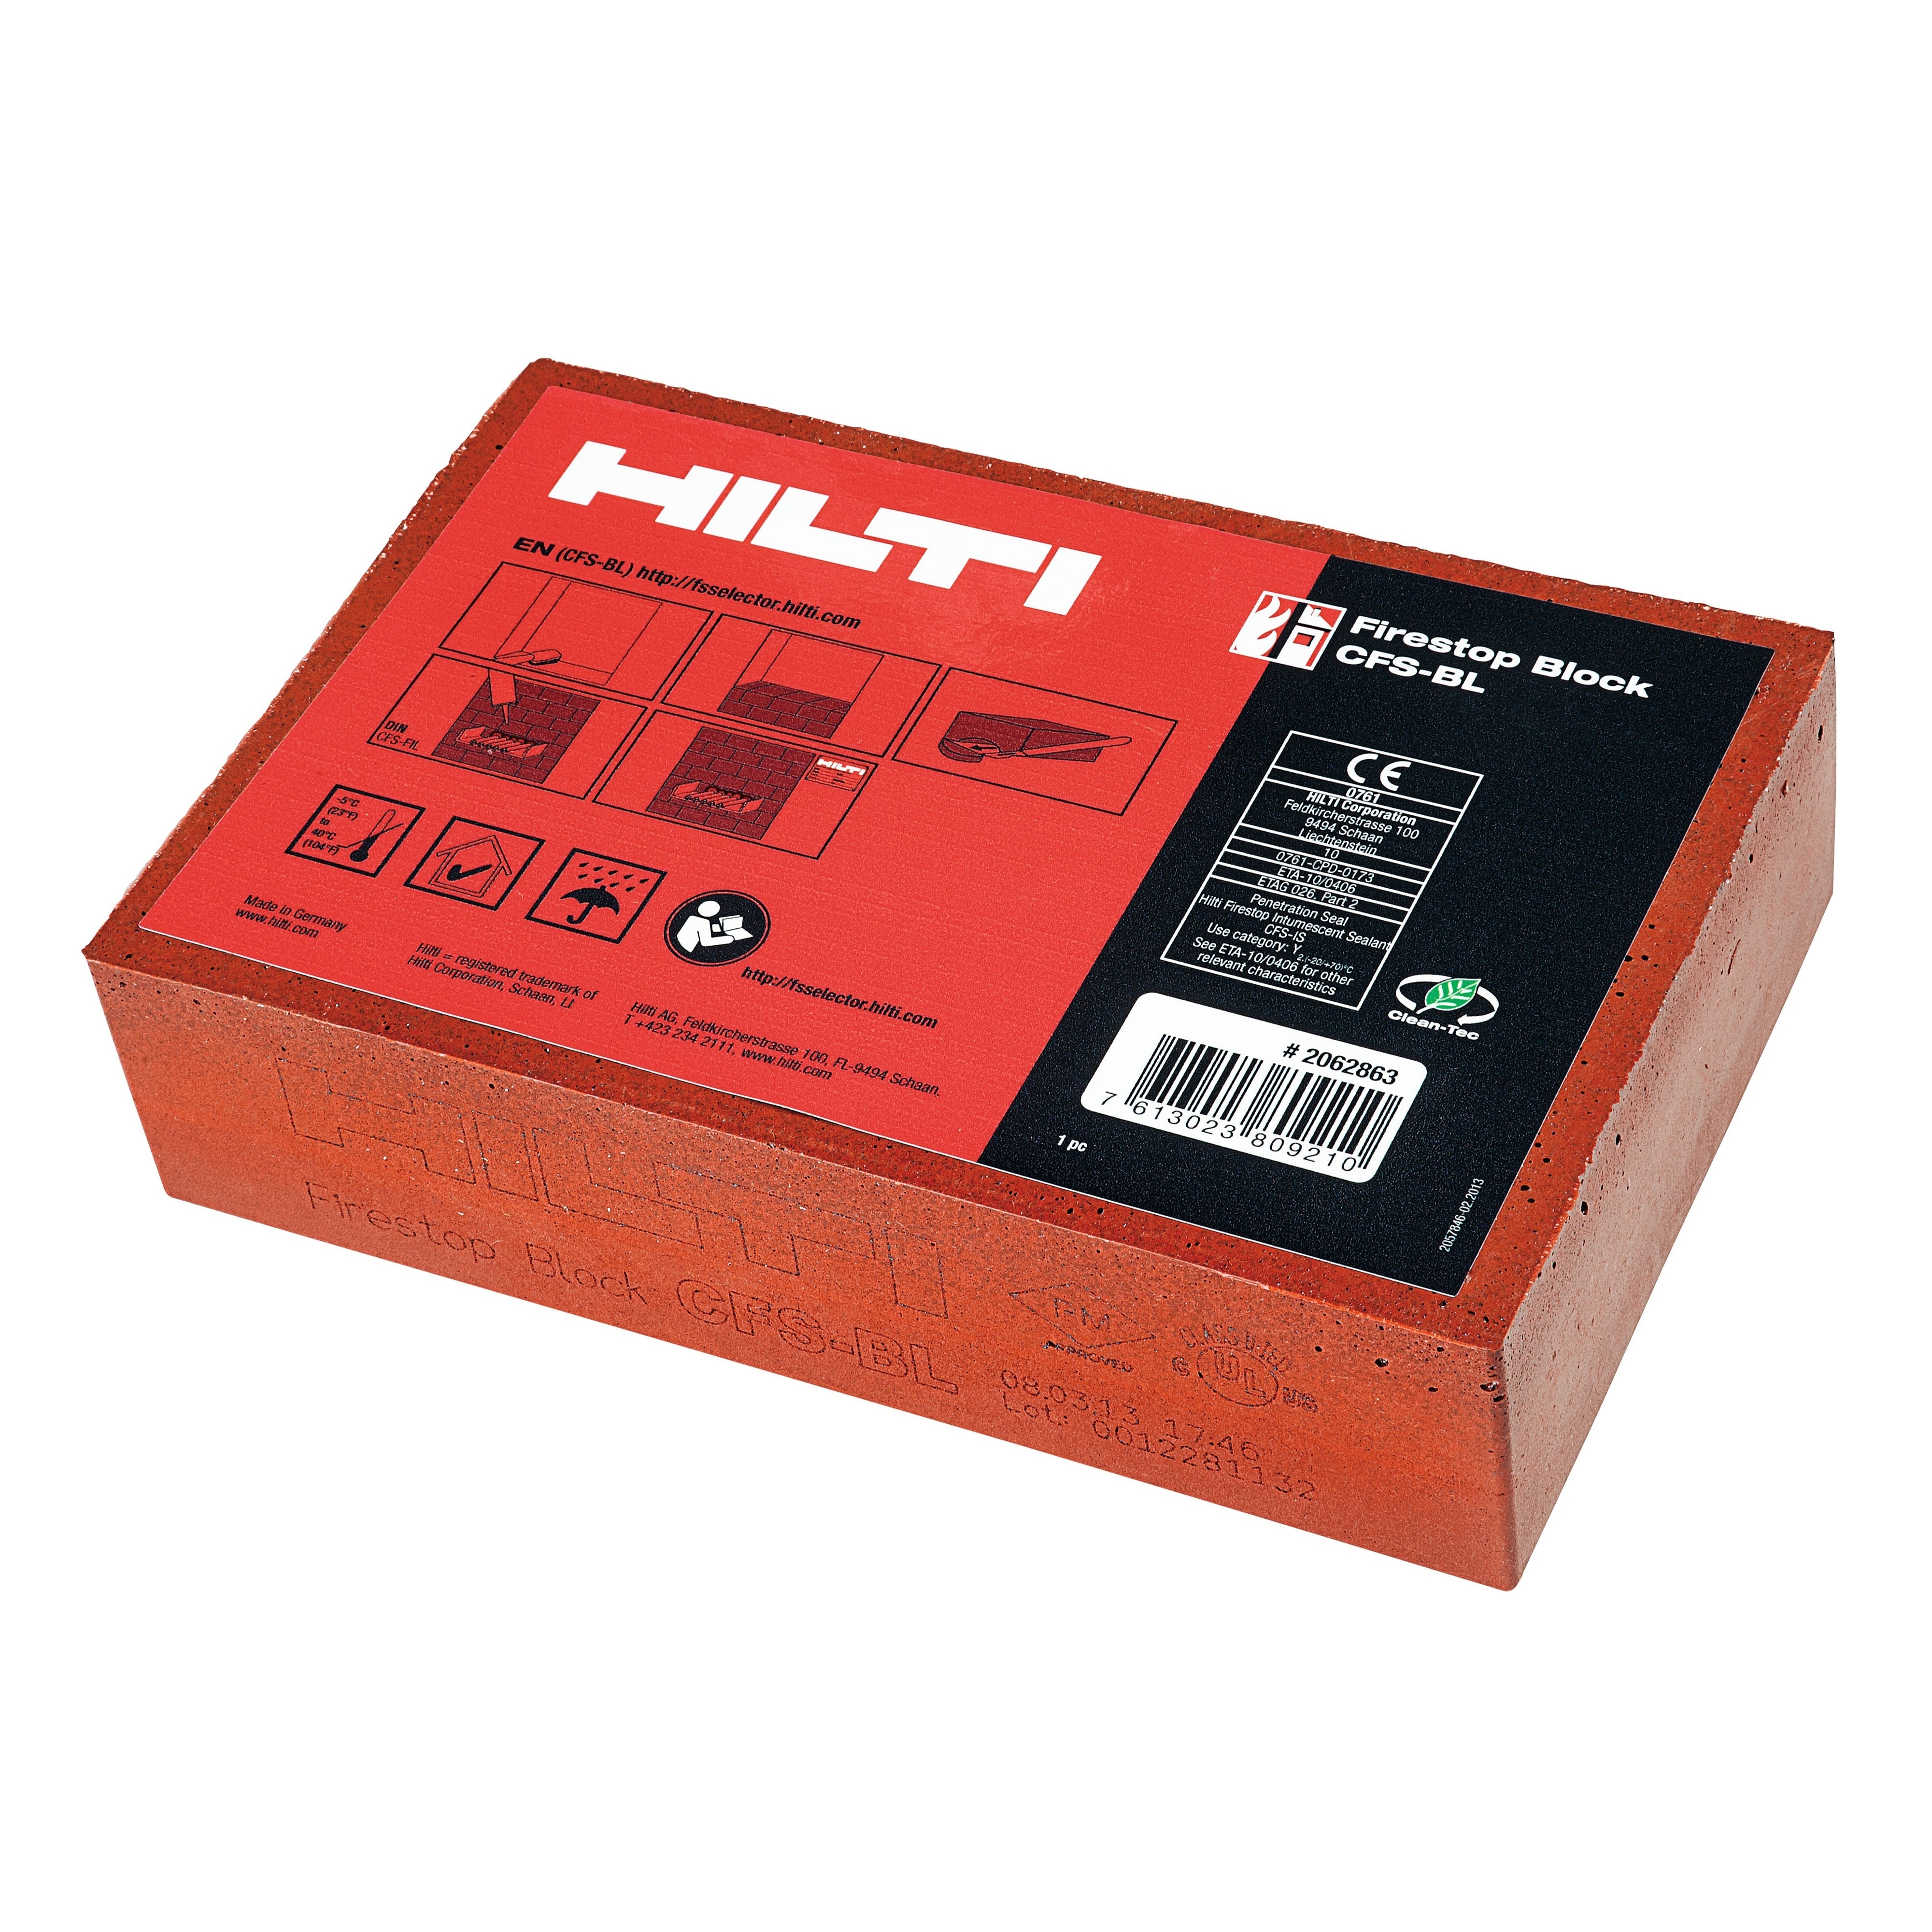 Hilti firestop for environmentally friendly buildings, reformulated to remove hazardous substances